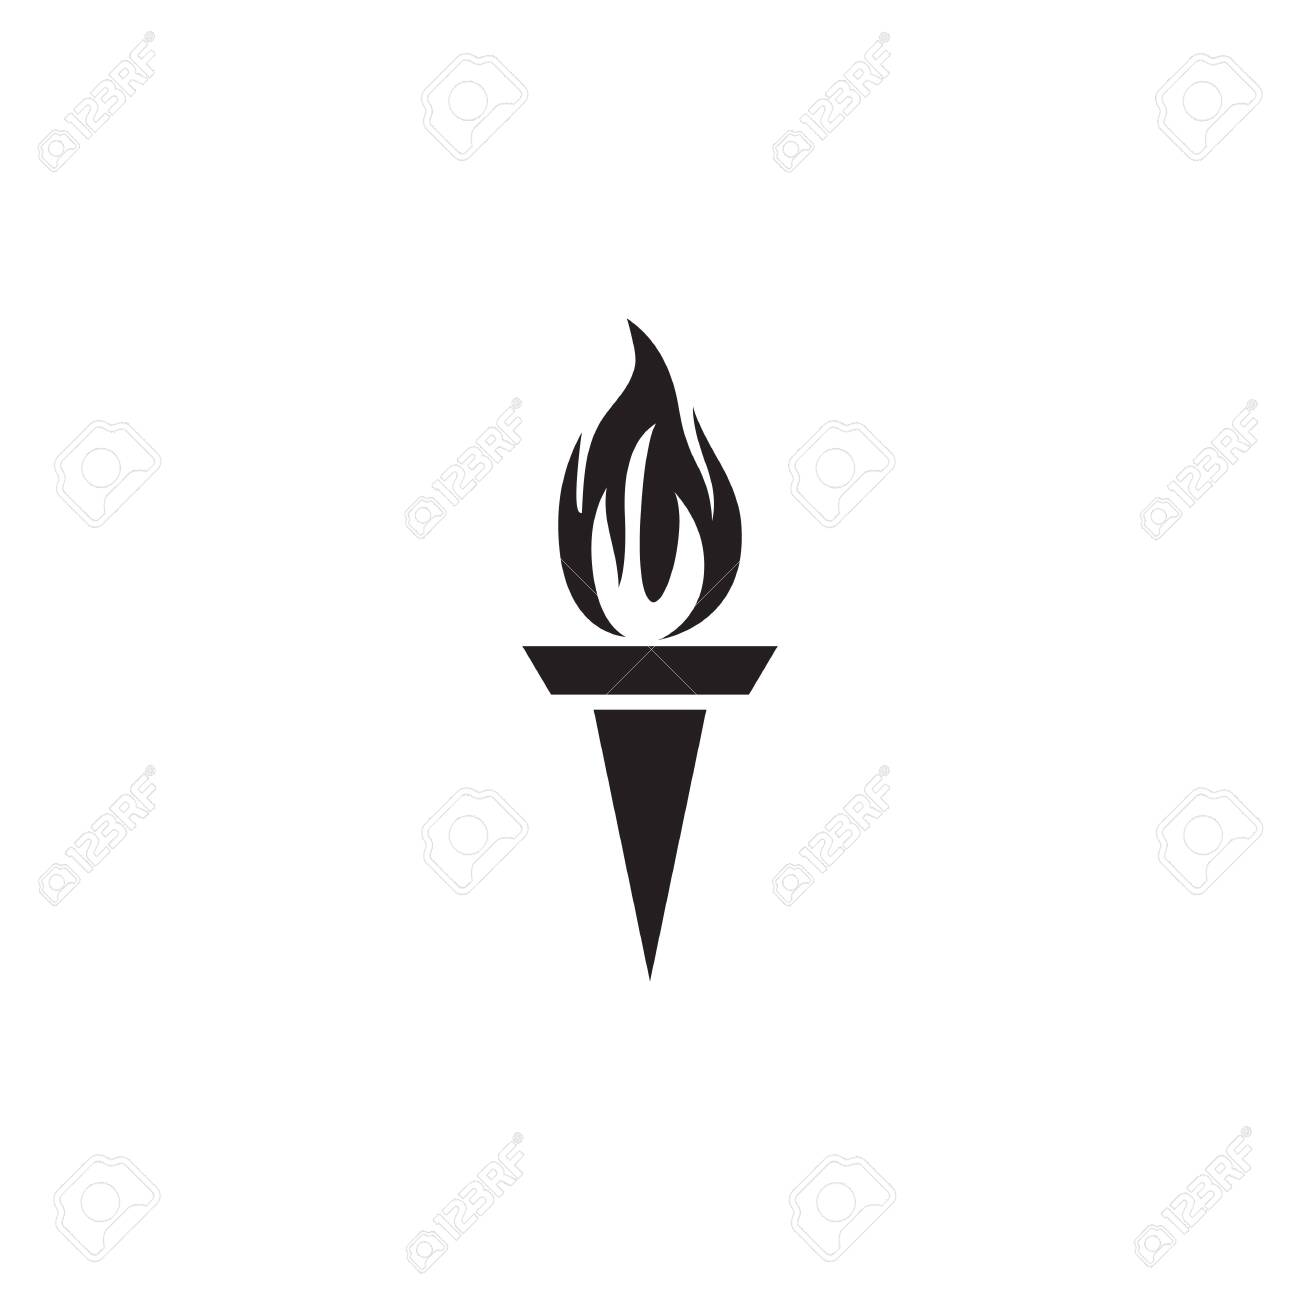 torch design inspiration vector